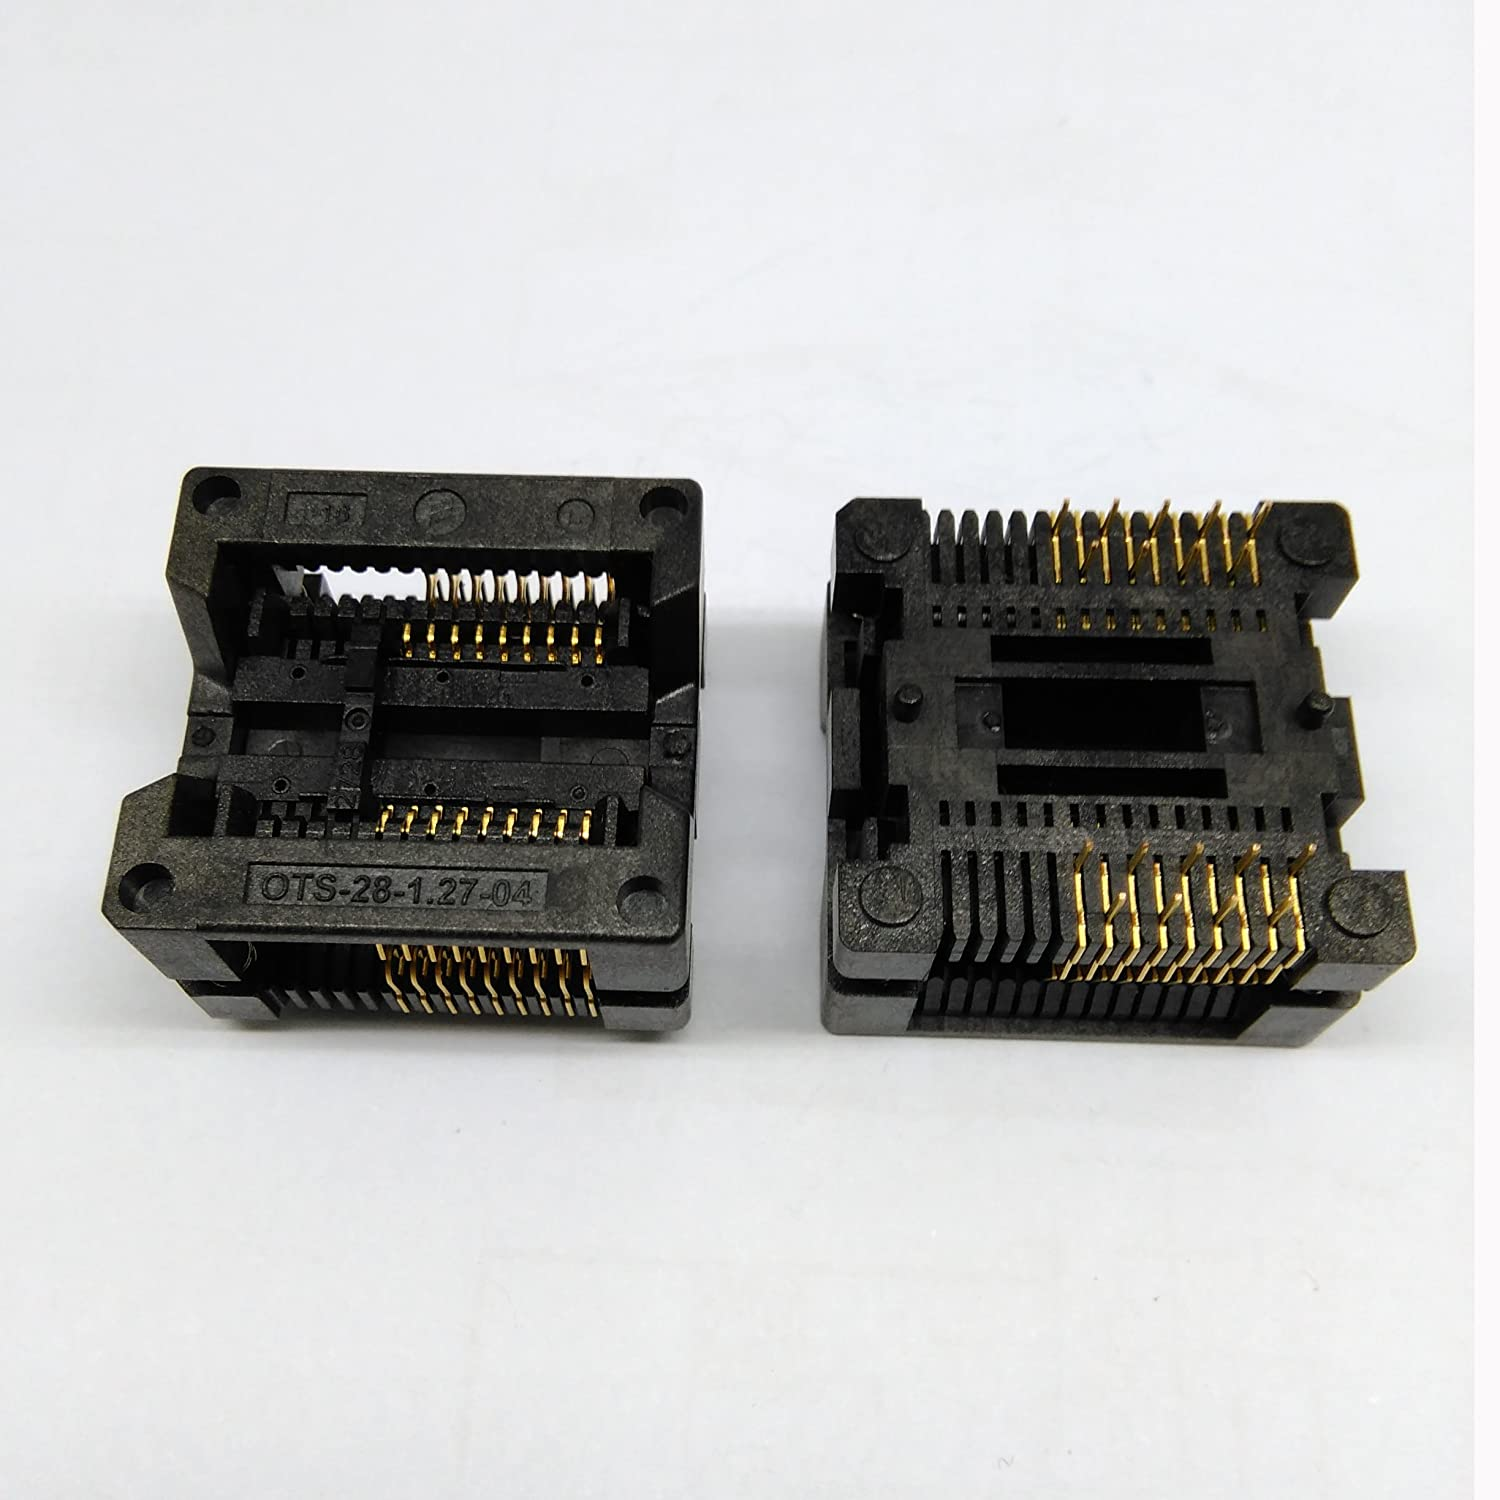 Free Shipping SOP18 SOIC18 SO18 to DIP18 Programming Socket Pitch 1.27mm IC Body Width 7.5mm 300mil Test Socket Adapter KZT